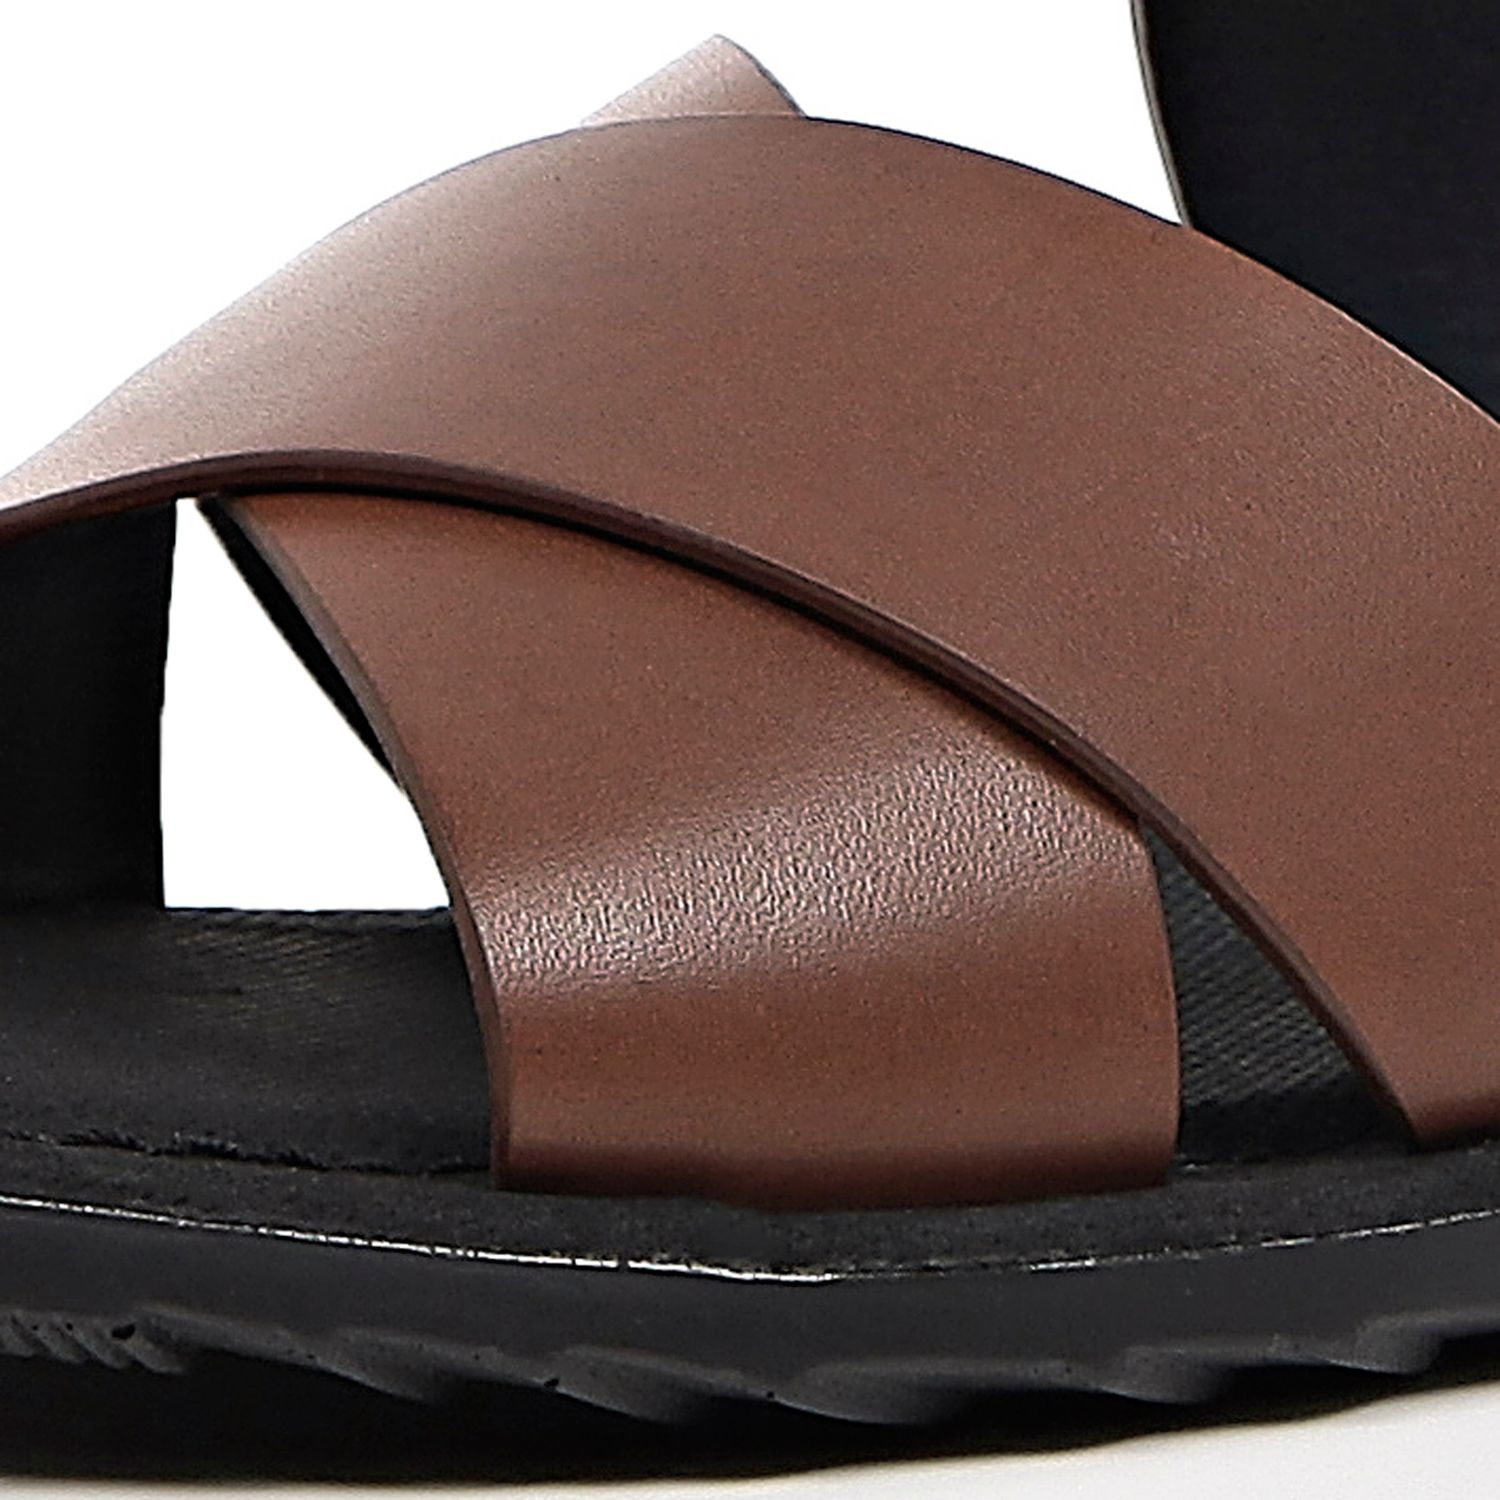 b1d7e67b3ddb River Island Brown Back Strap Sandals in Brown for Men - Lyst